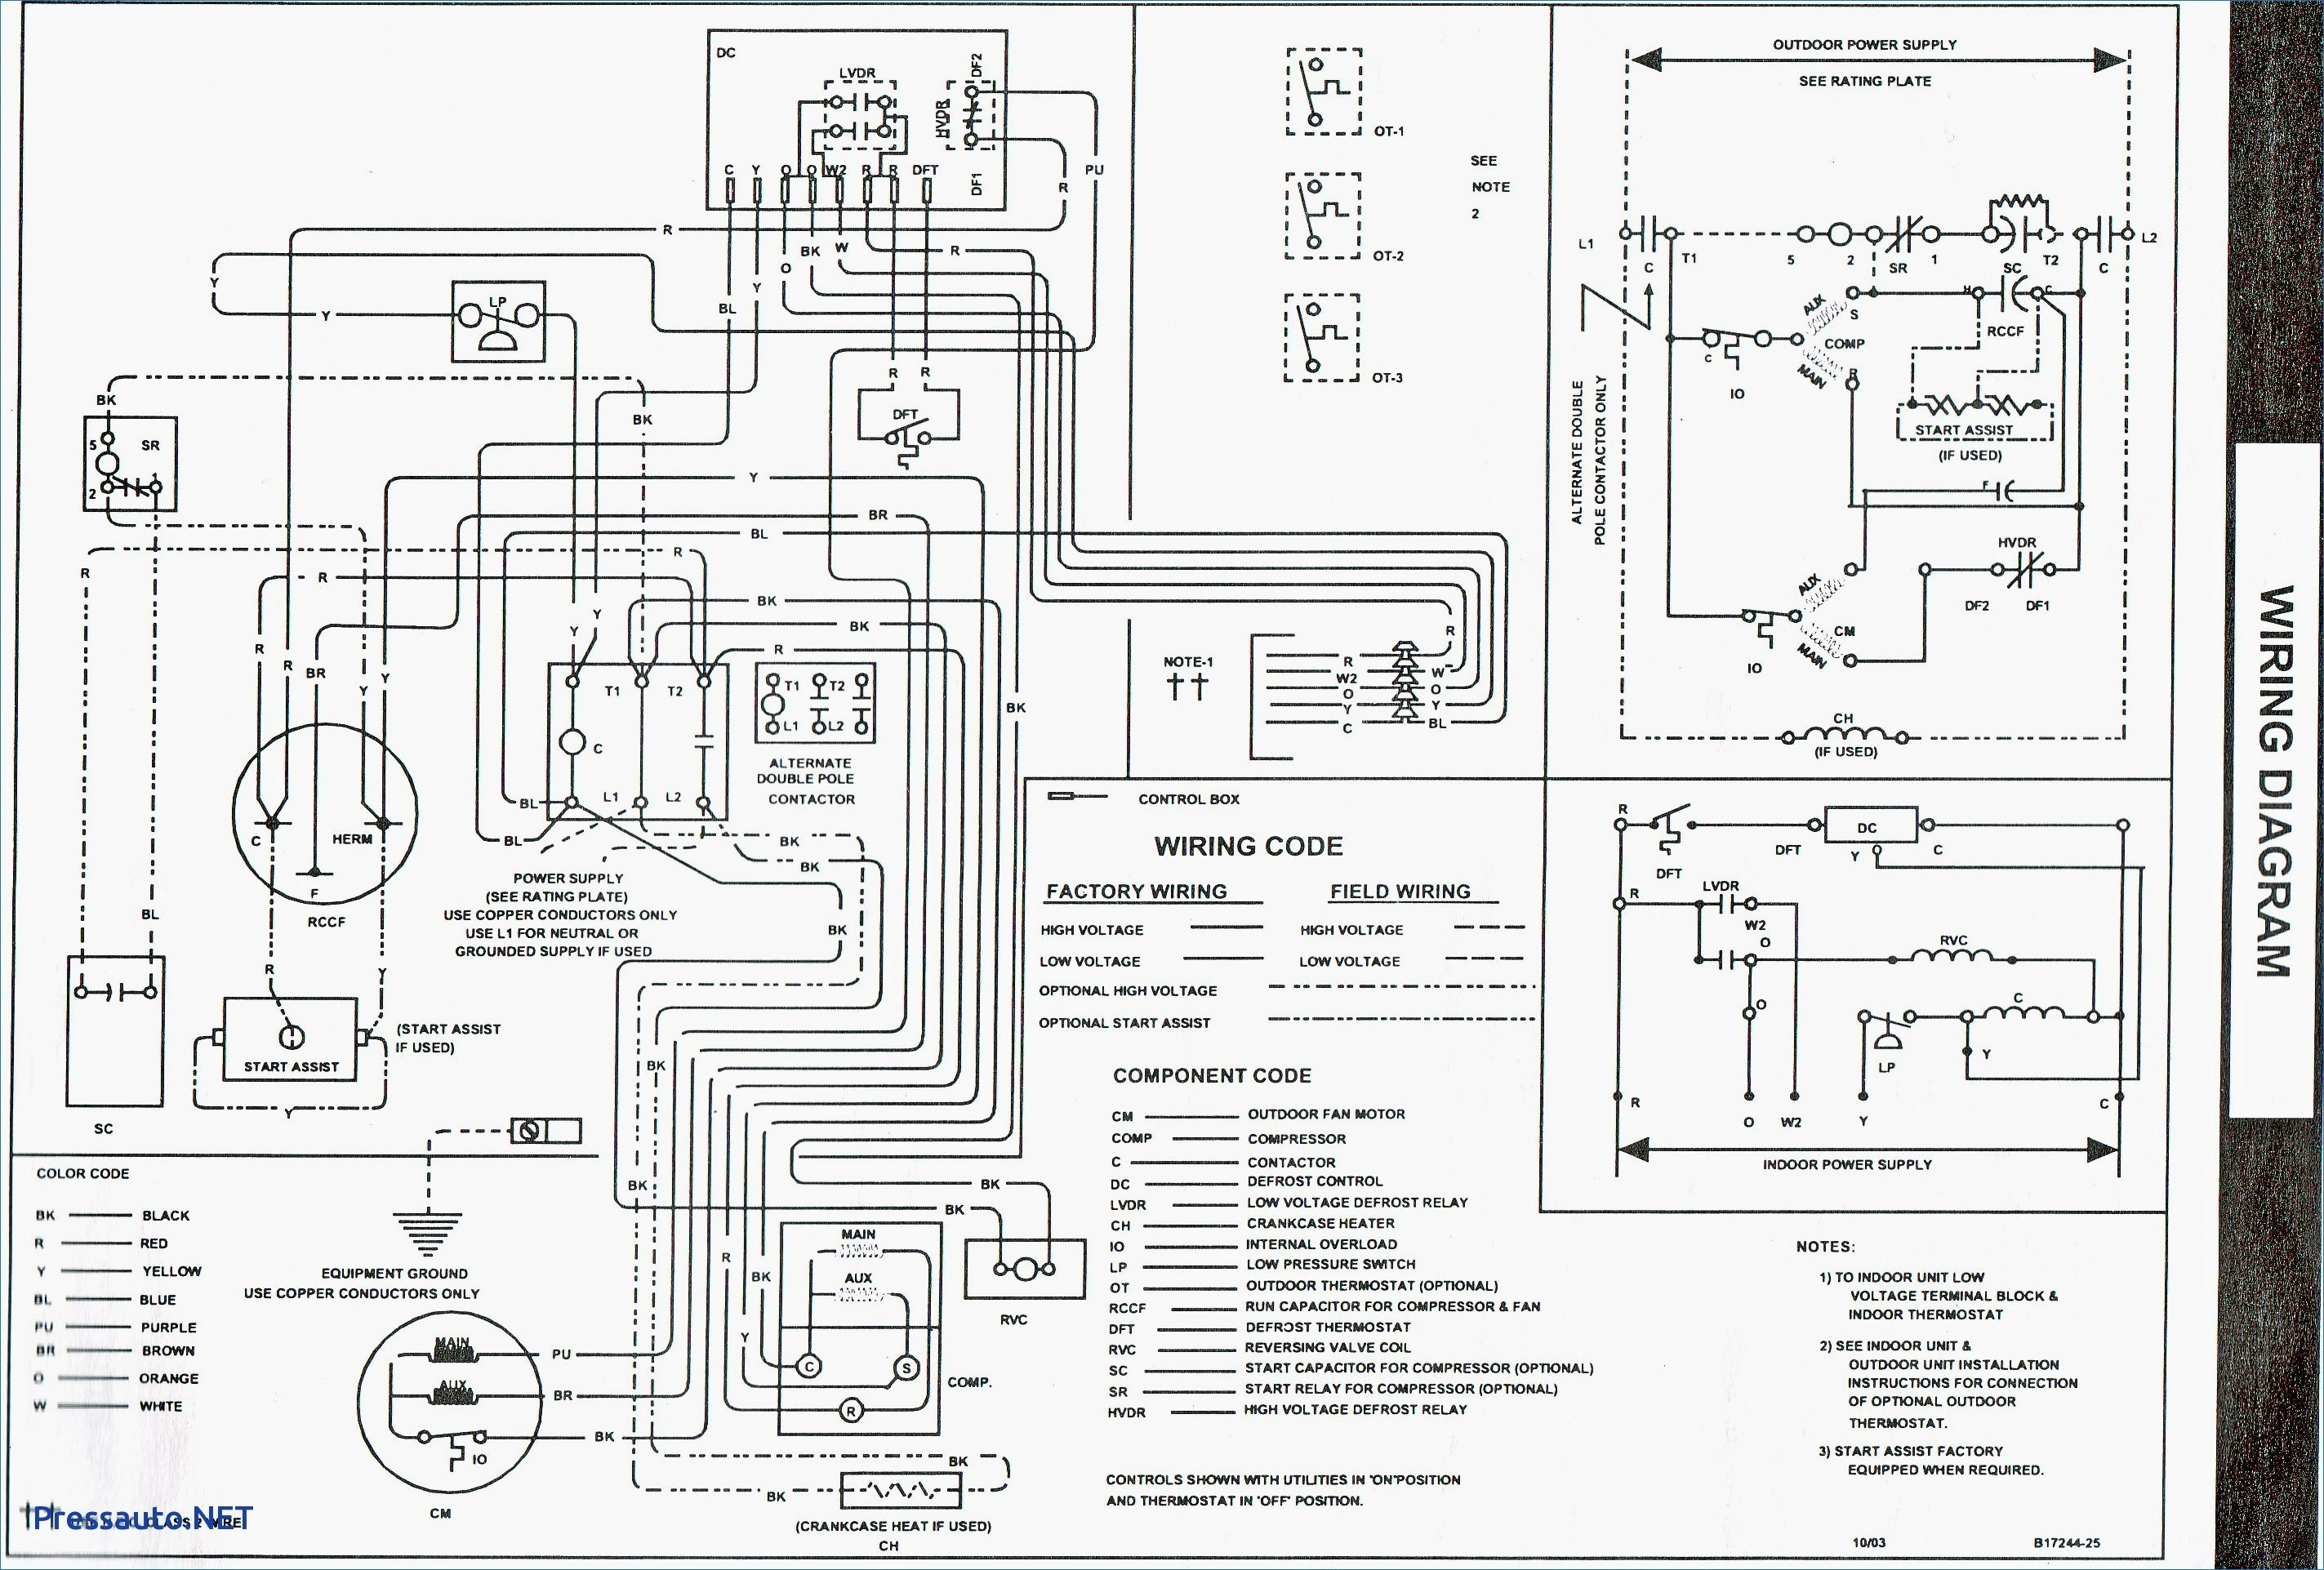 Ruud Oil Furnace Wiring Diagram | Wiring Diagram - Oil Furnace Wiring Diagram